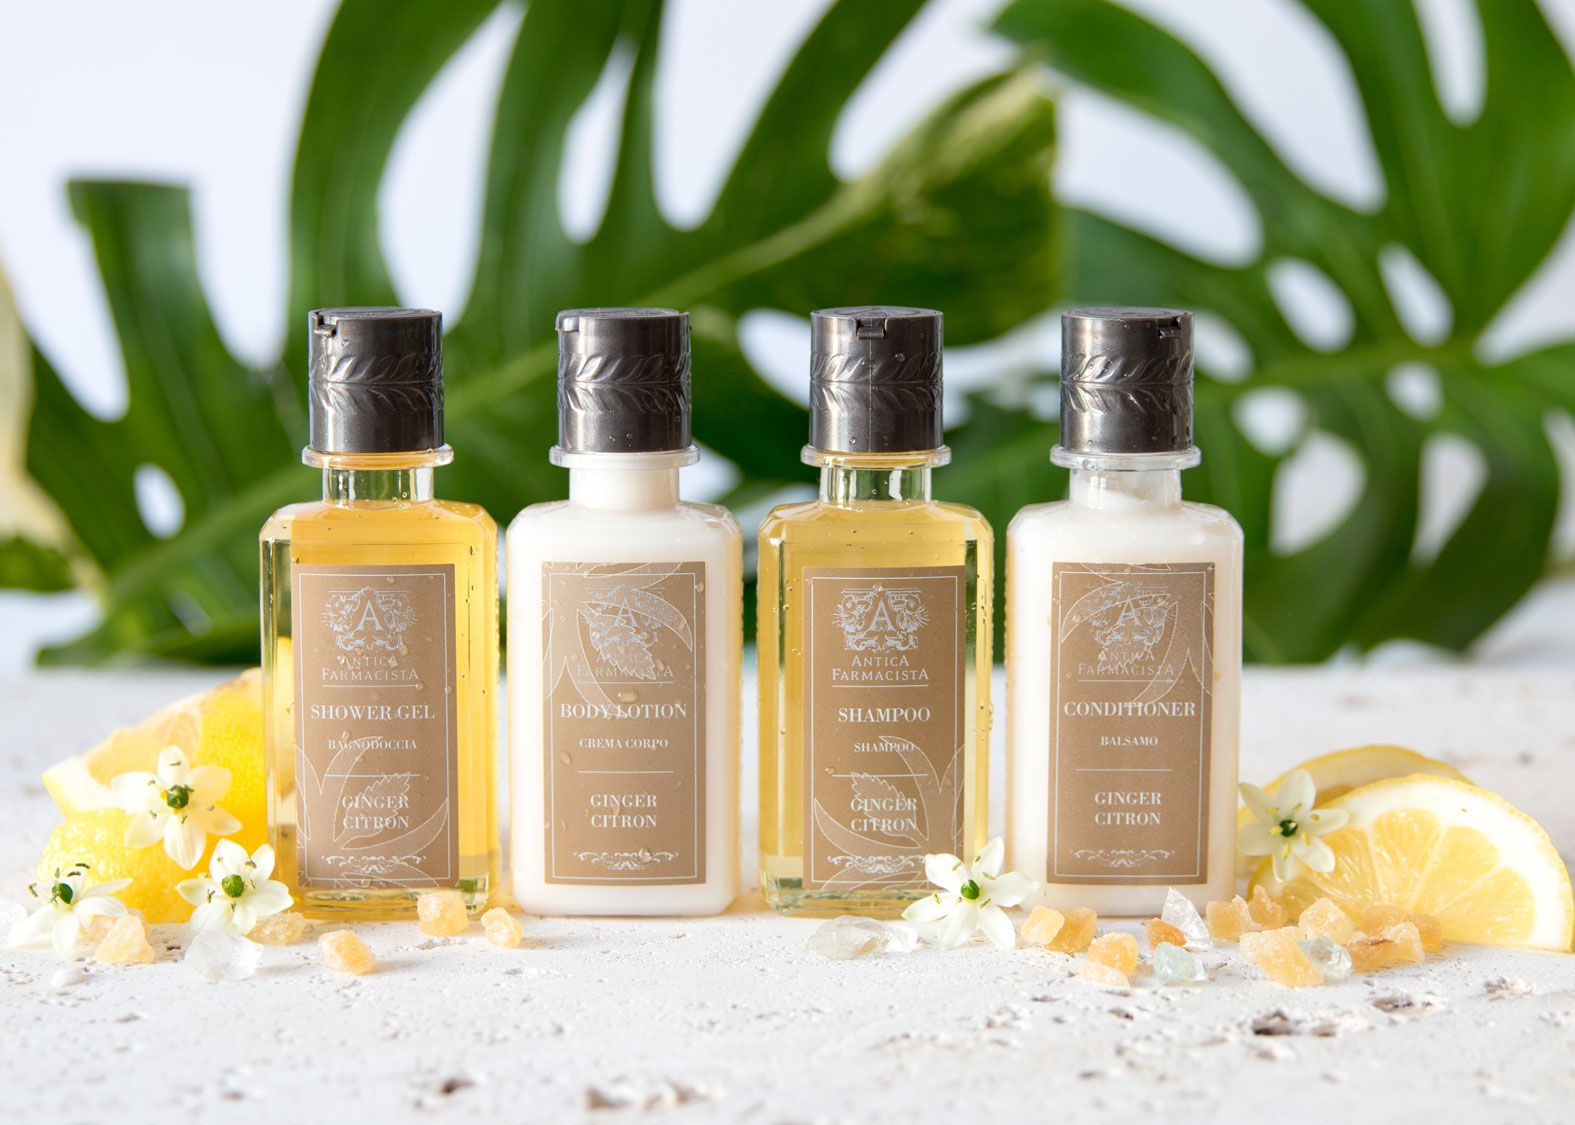 8 of the best luxury hotel toiletries with images